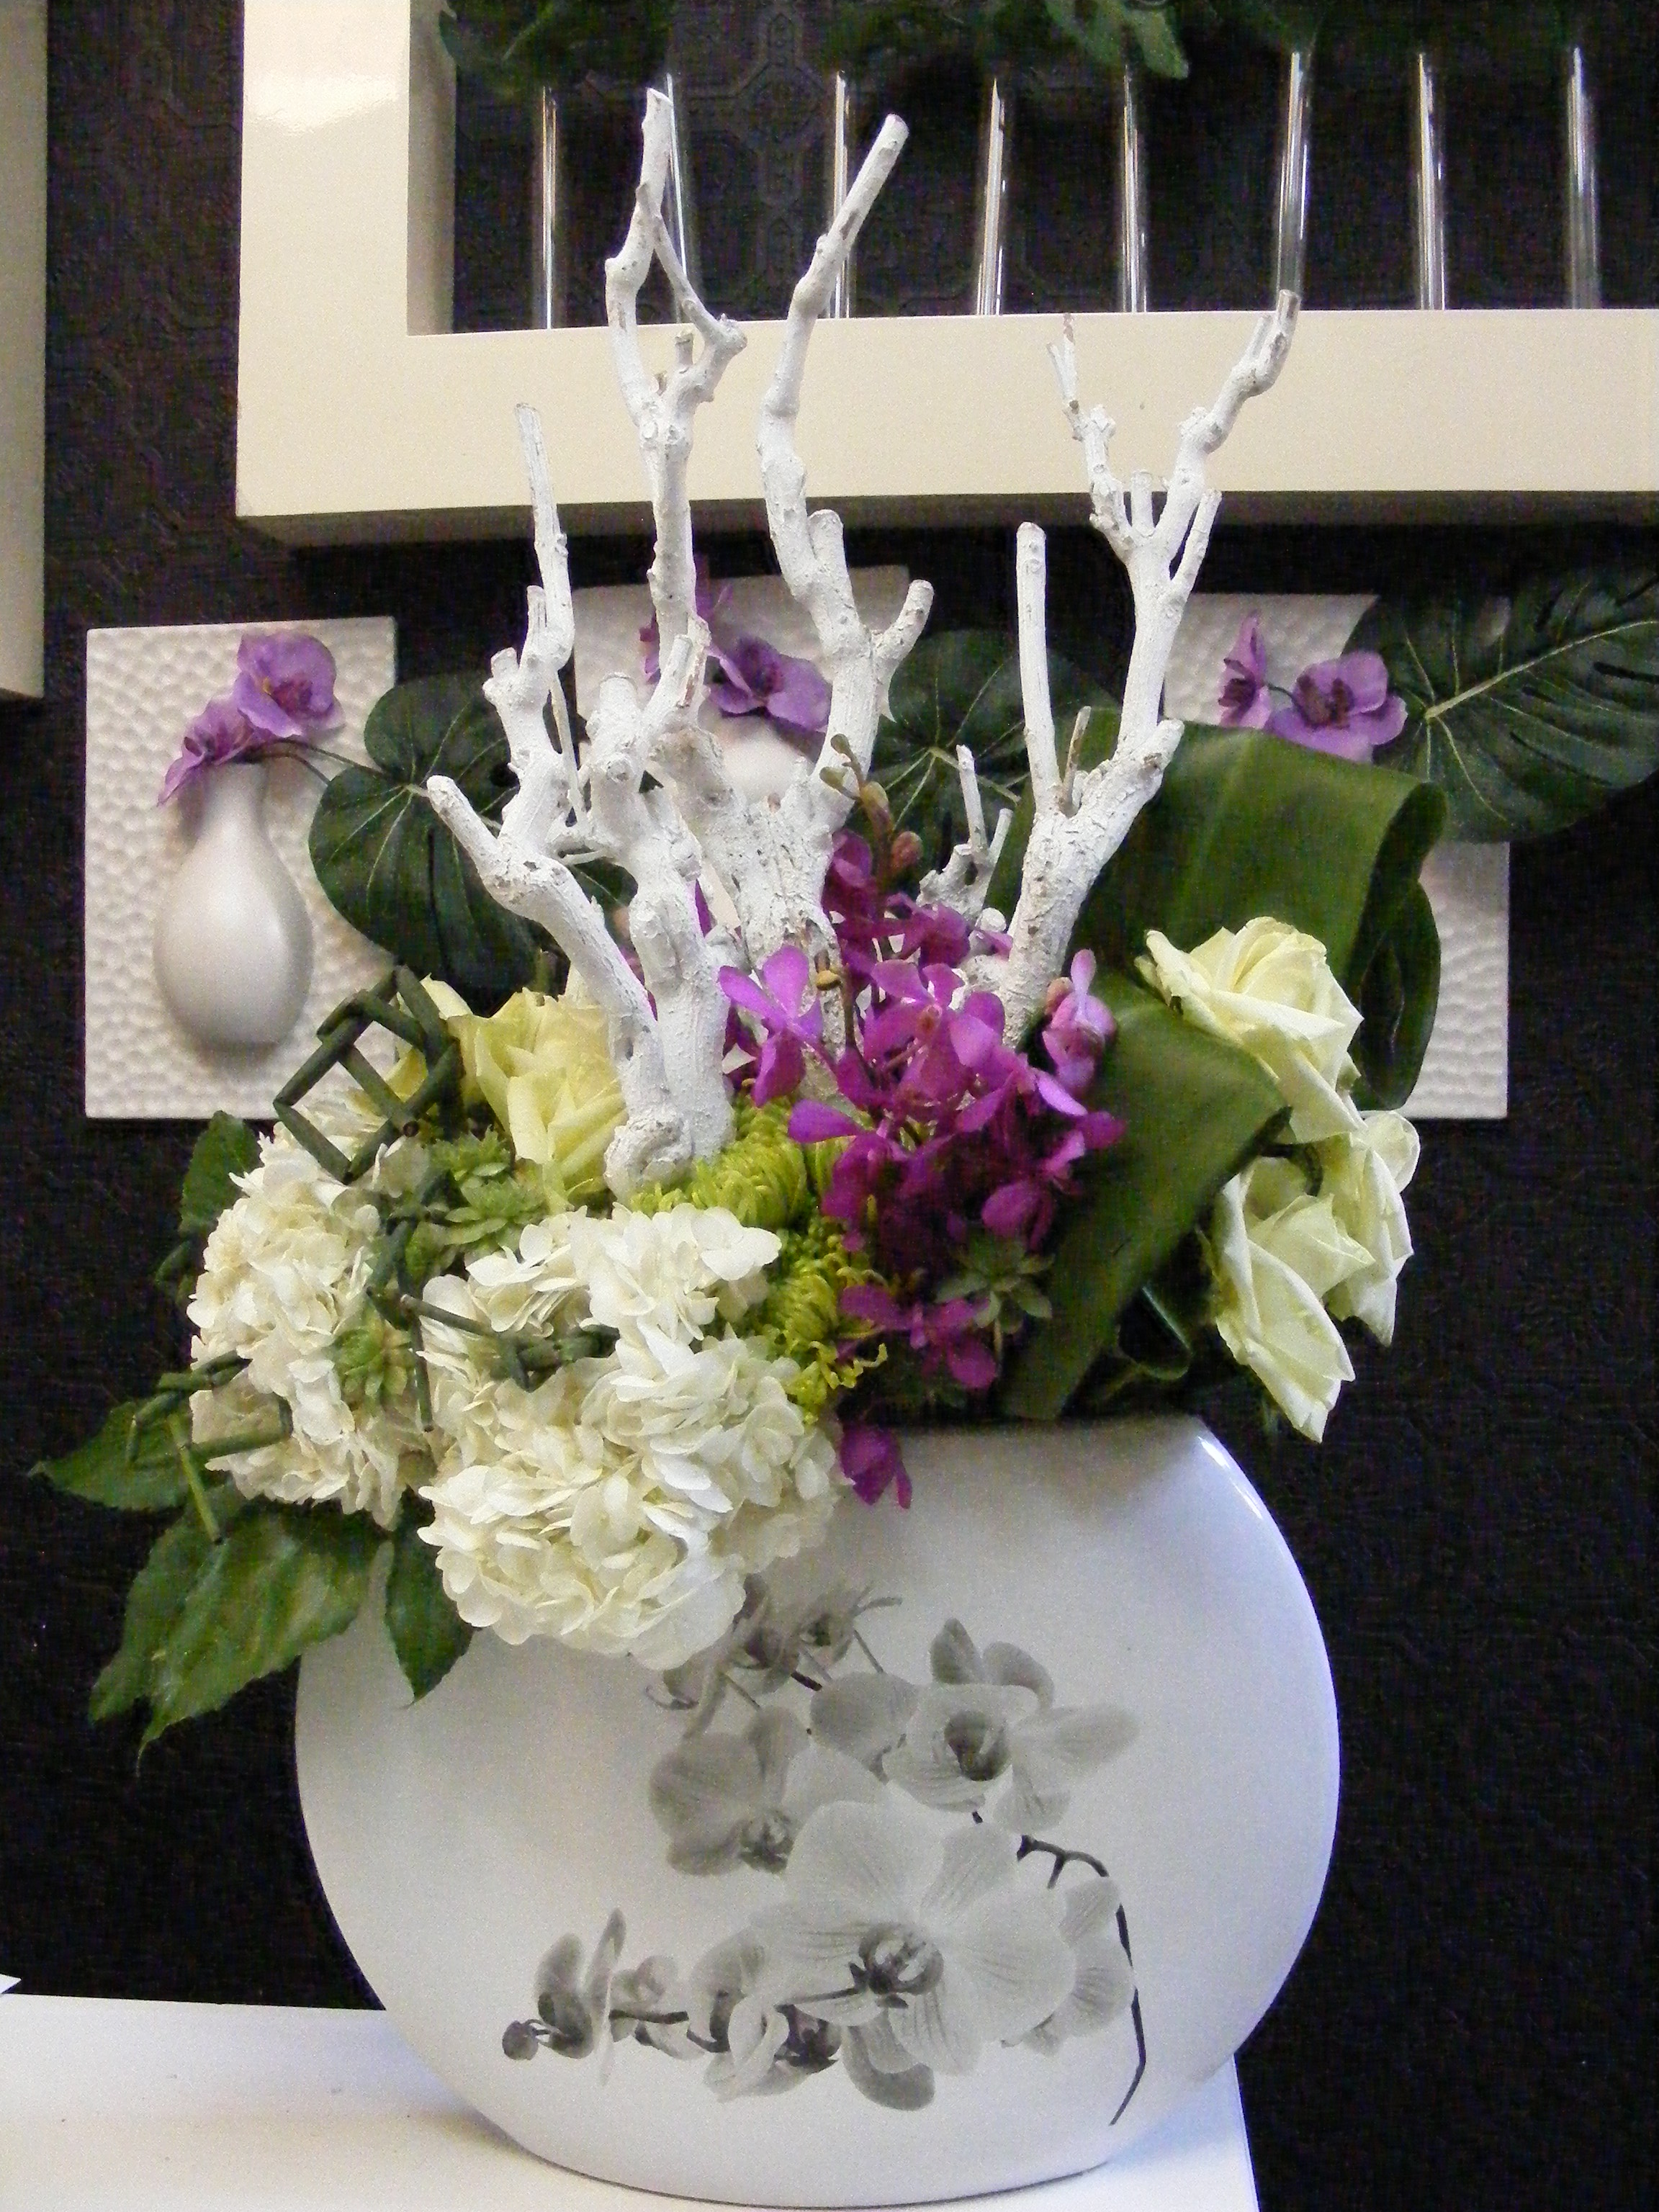 Mondu Floral Design  highend downtown Toronto flower shop